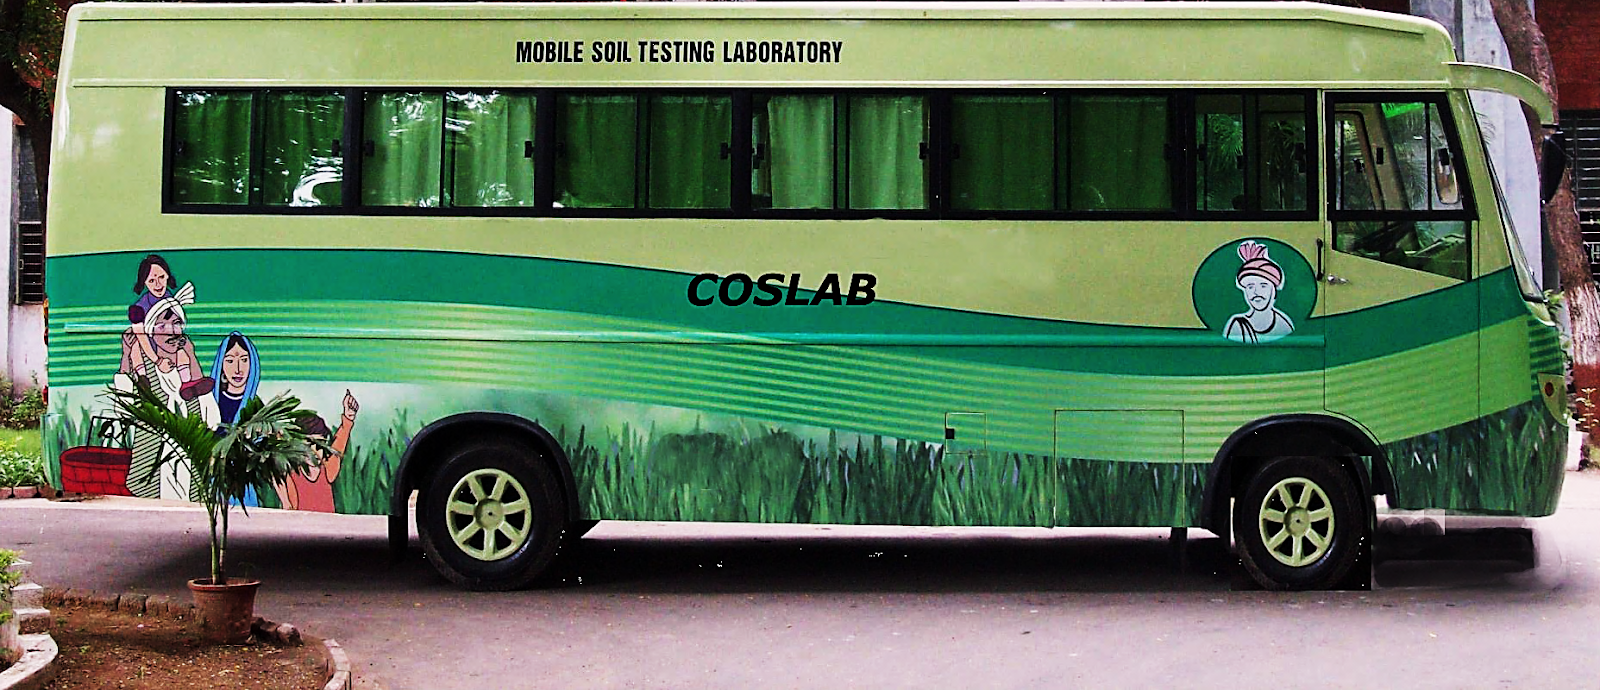 Mobile Soil Testing Laboratory Van Bus Manufacture And Supplier